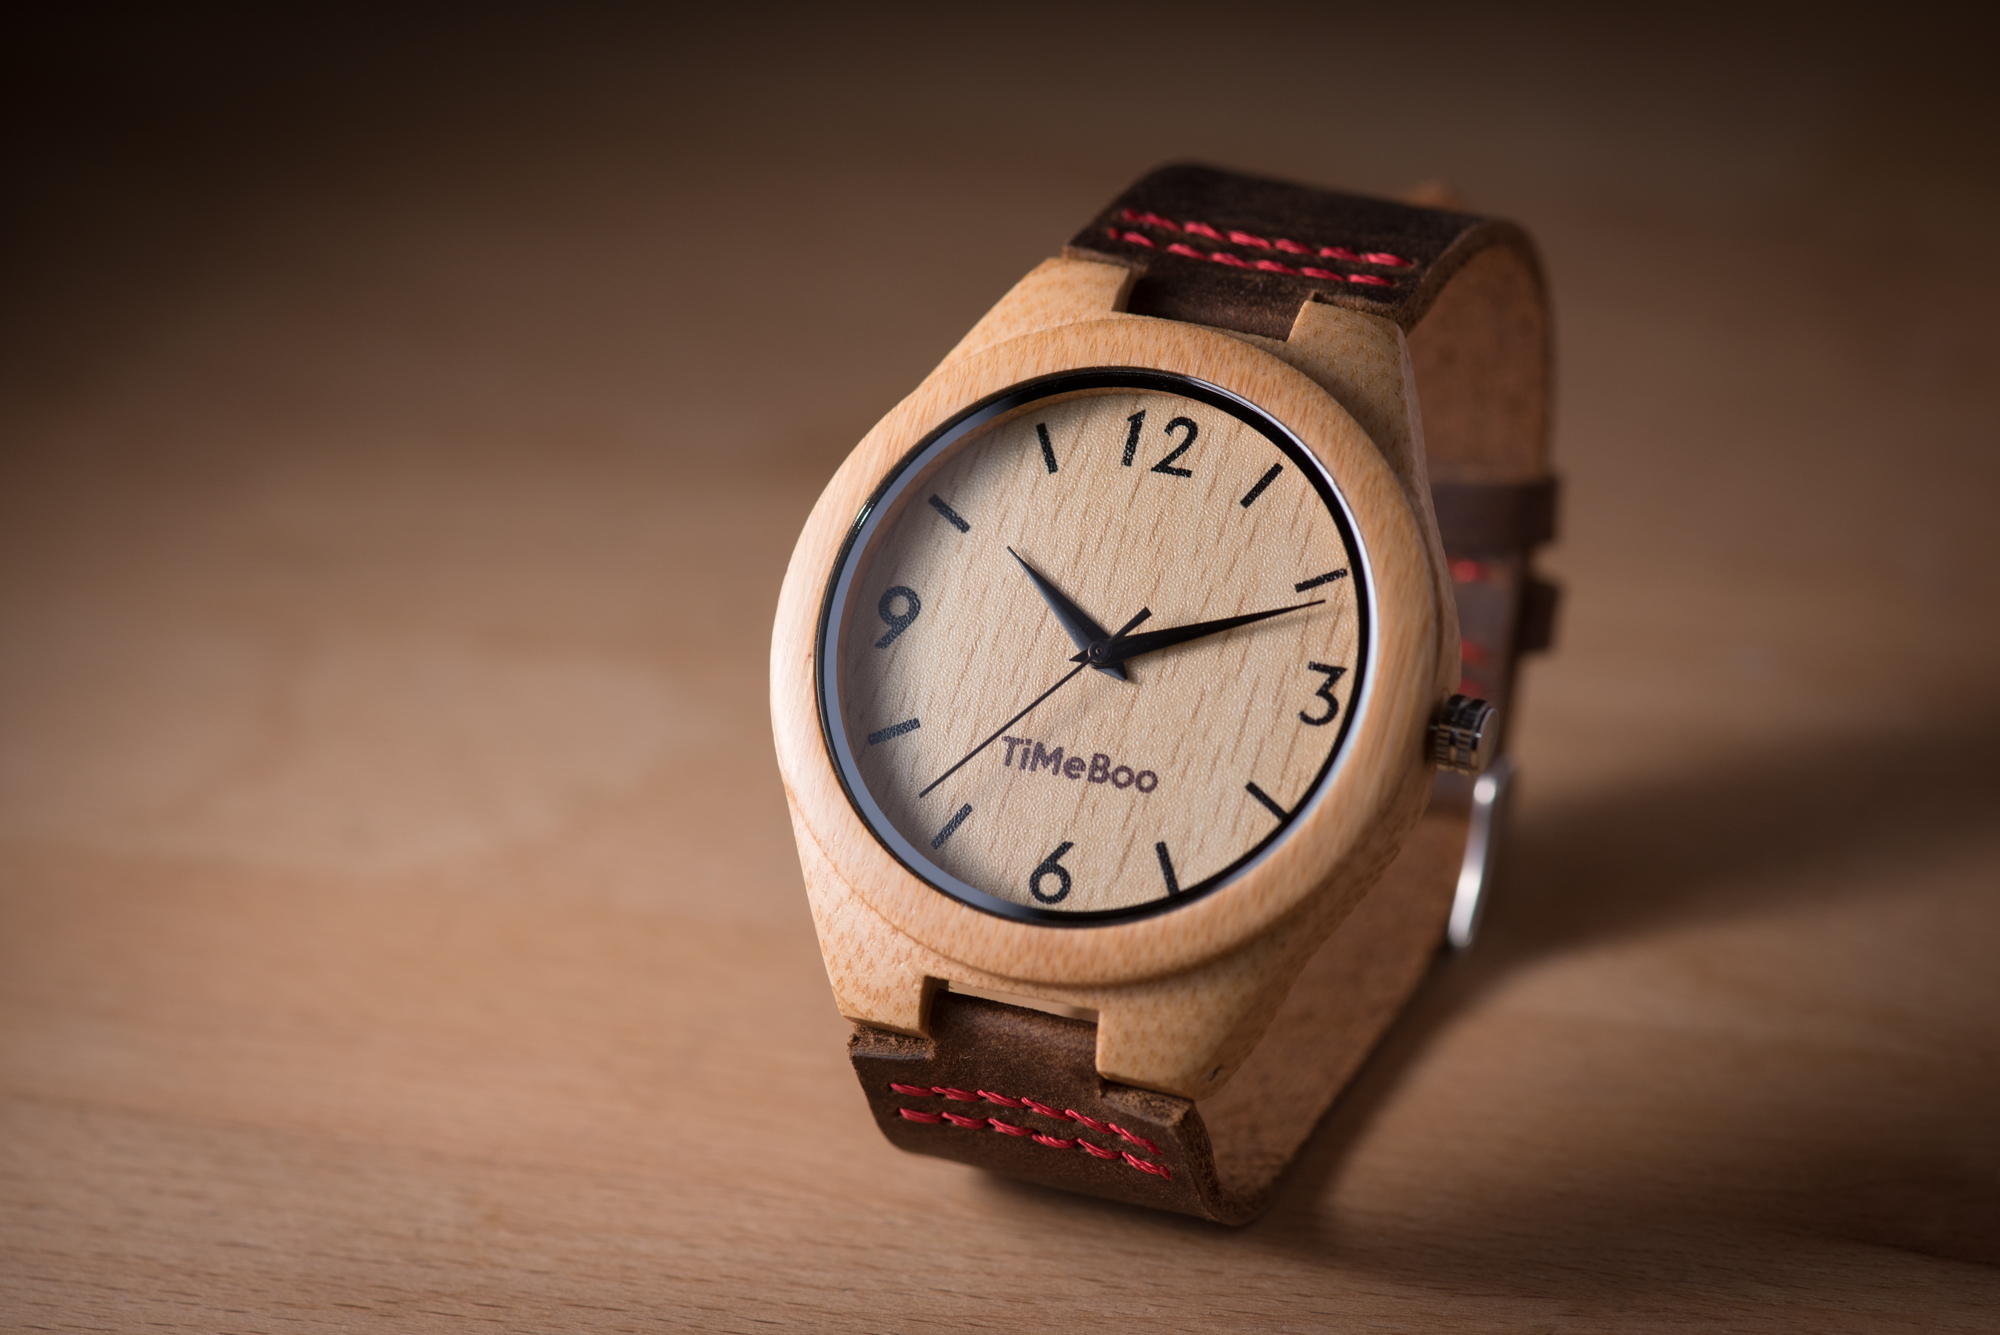 TimeBoo – A watch made of Bamboo